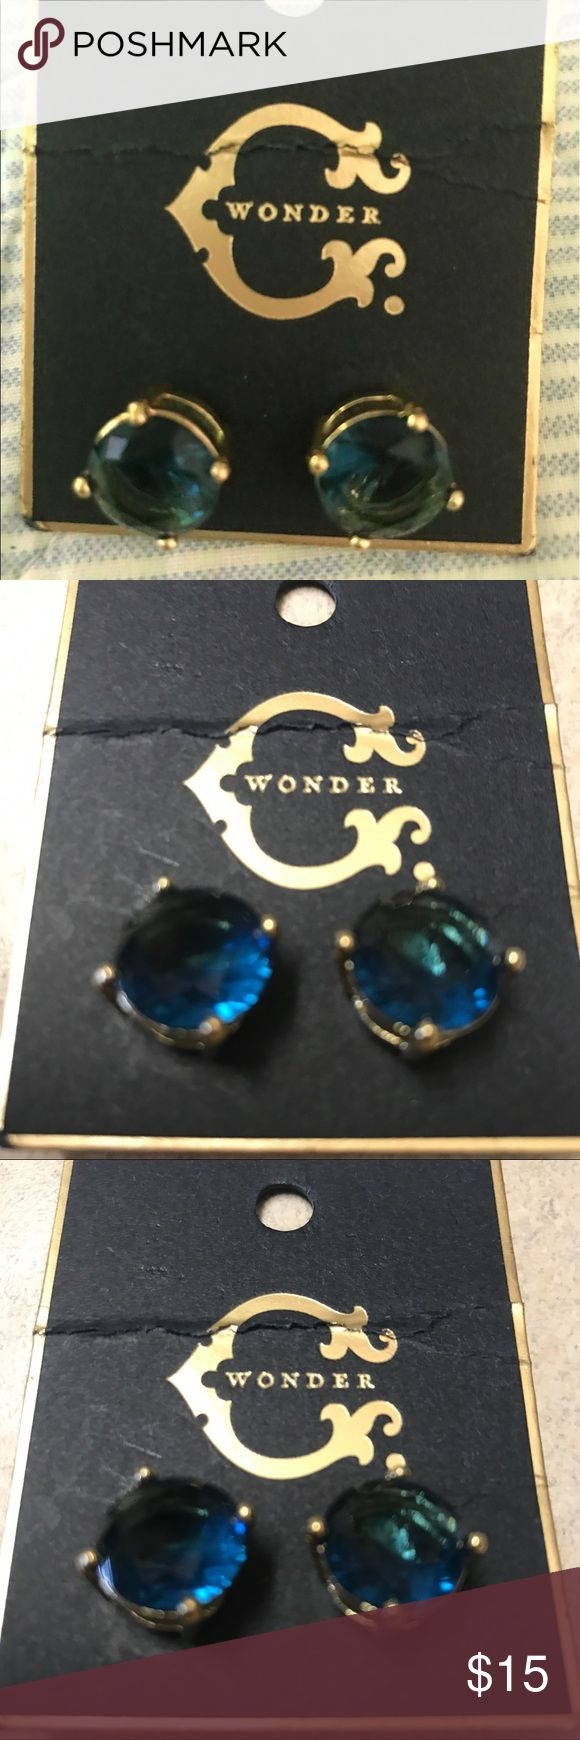 NWT C Wonder earrings spearmint C Wonder earrings, color spearmint - blue'ish green'ish C Wonder Jewelry Earrings